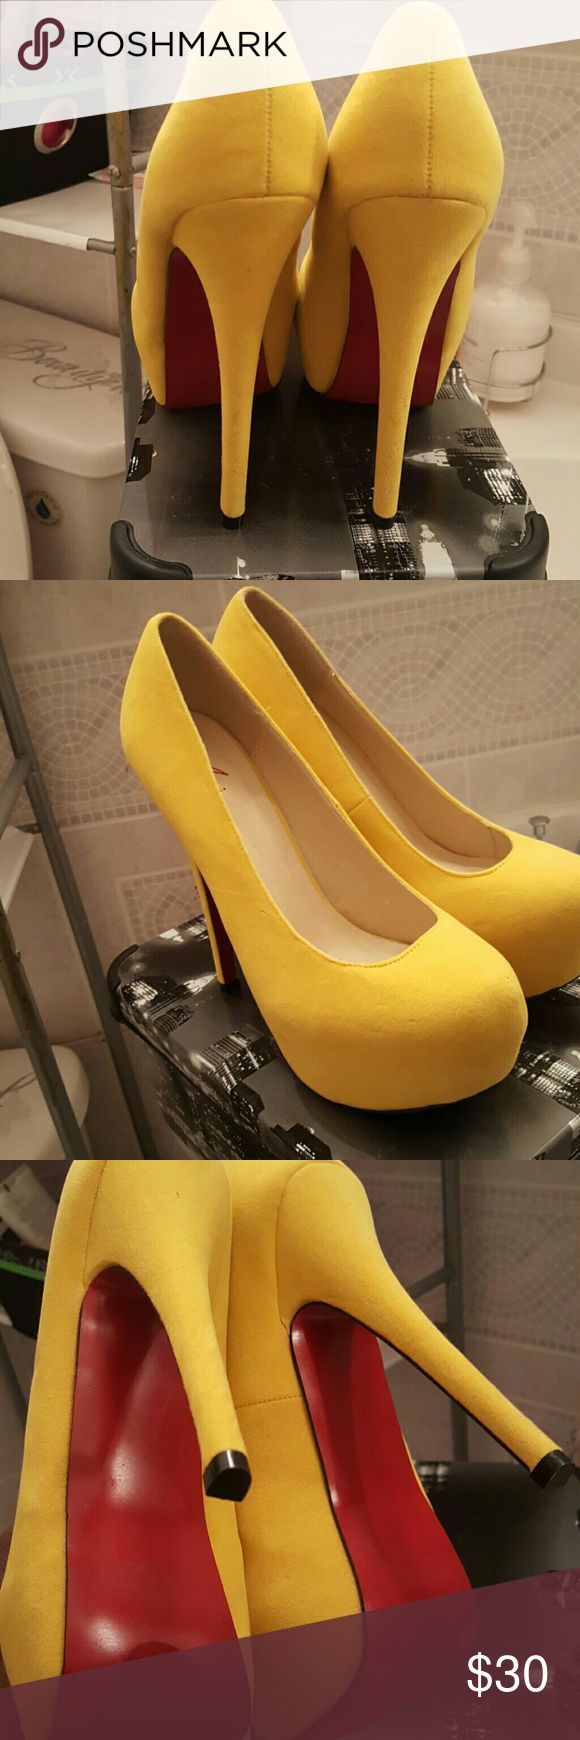 Beautiful yellow high heels with red bottom Yellow heels with red bottom Shoes Heels